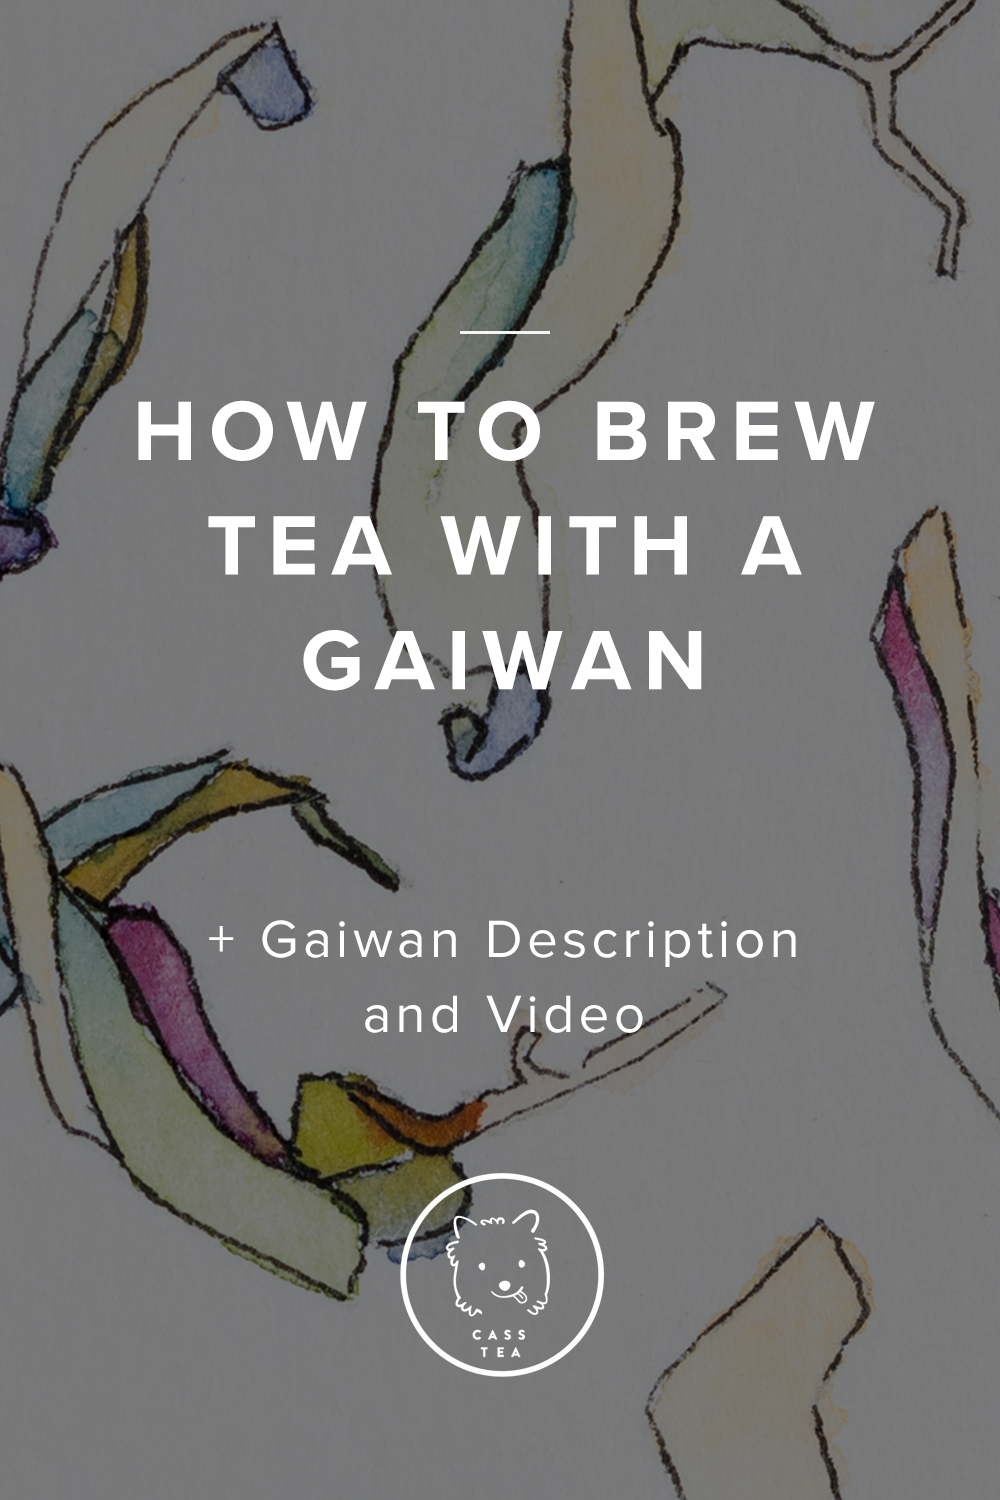 If you want to taste the full range of flavors locked inside your leaf, resist the bitterness, and get your moneys worth - the Gaiwan is for you. Western mugs, over brewed and flooded with too much water, remove the subtleties otherwise present. Just like a Wine Glass is made to heighten the experience of your favor Red, and with Tea, you need the right tool for the job. This quick article will teach your in 4 easy steps how to Brew with a Gaiwan.